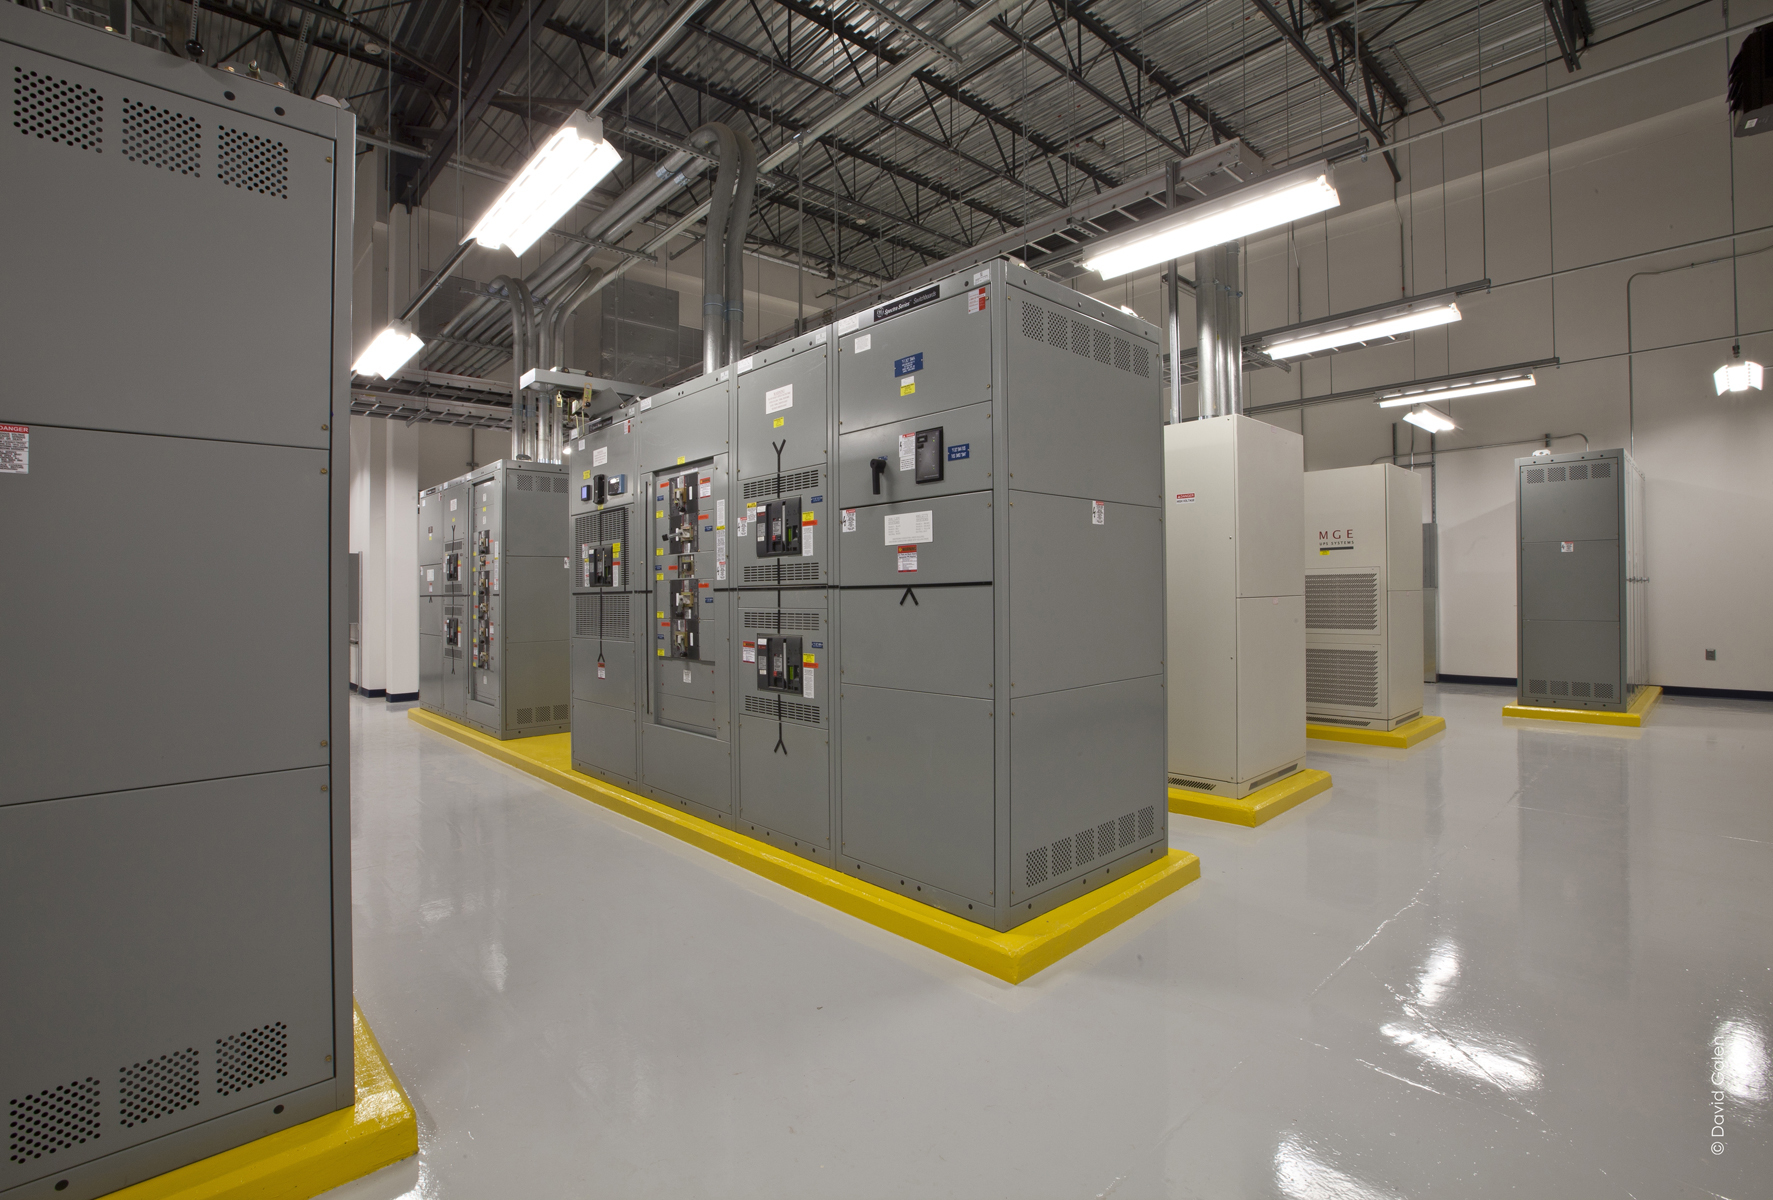 DLR Loudoun Exchange Data Center interior